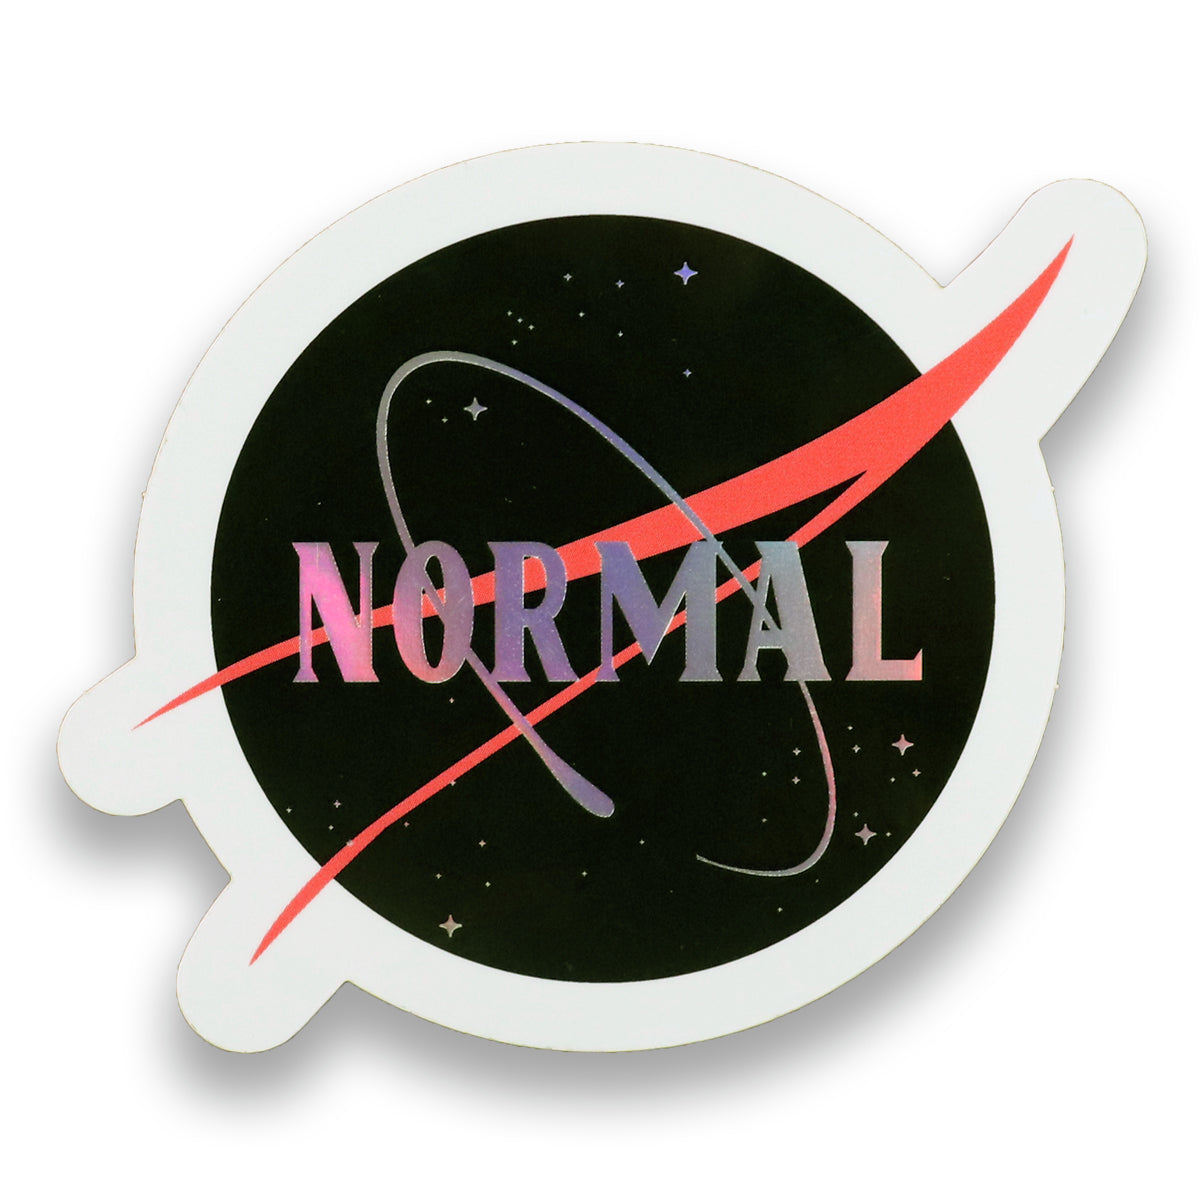 Normal sticker holographic rainbow colors. Stars, galazy, NASA, Pride, LGTBQ lesbian gay transsexual bisexual queer community. Normalize people. Trendy popular fashion and political.